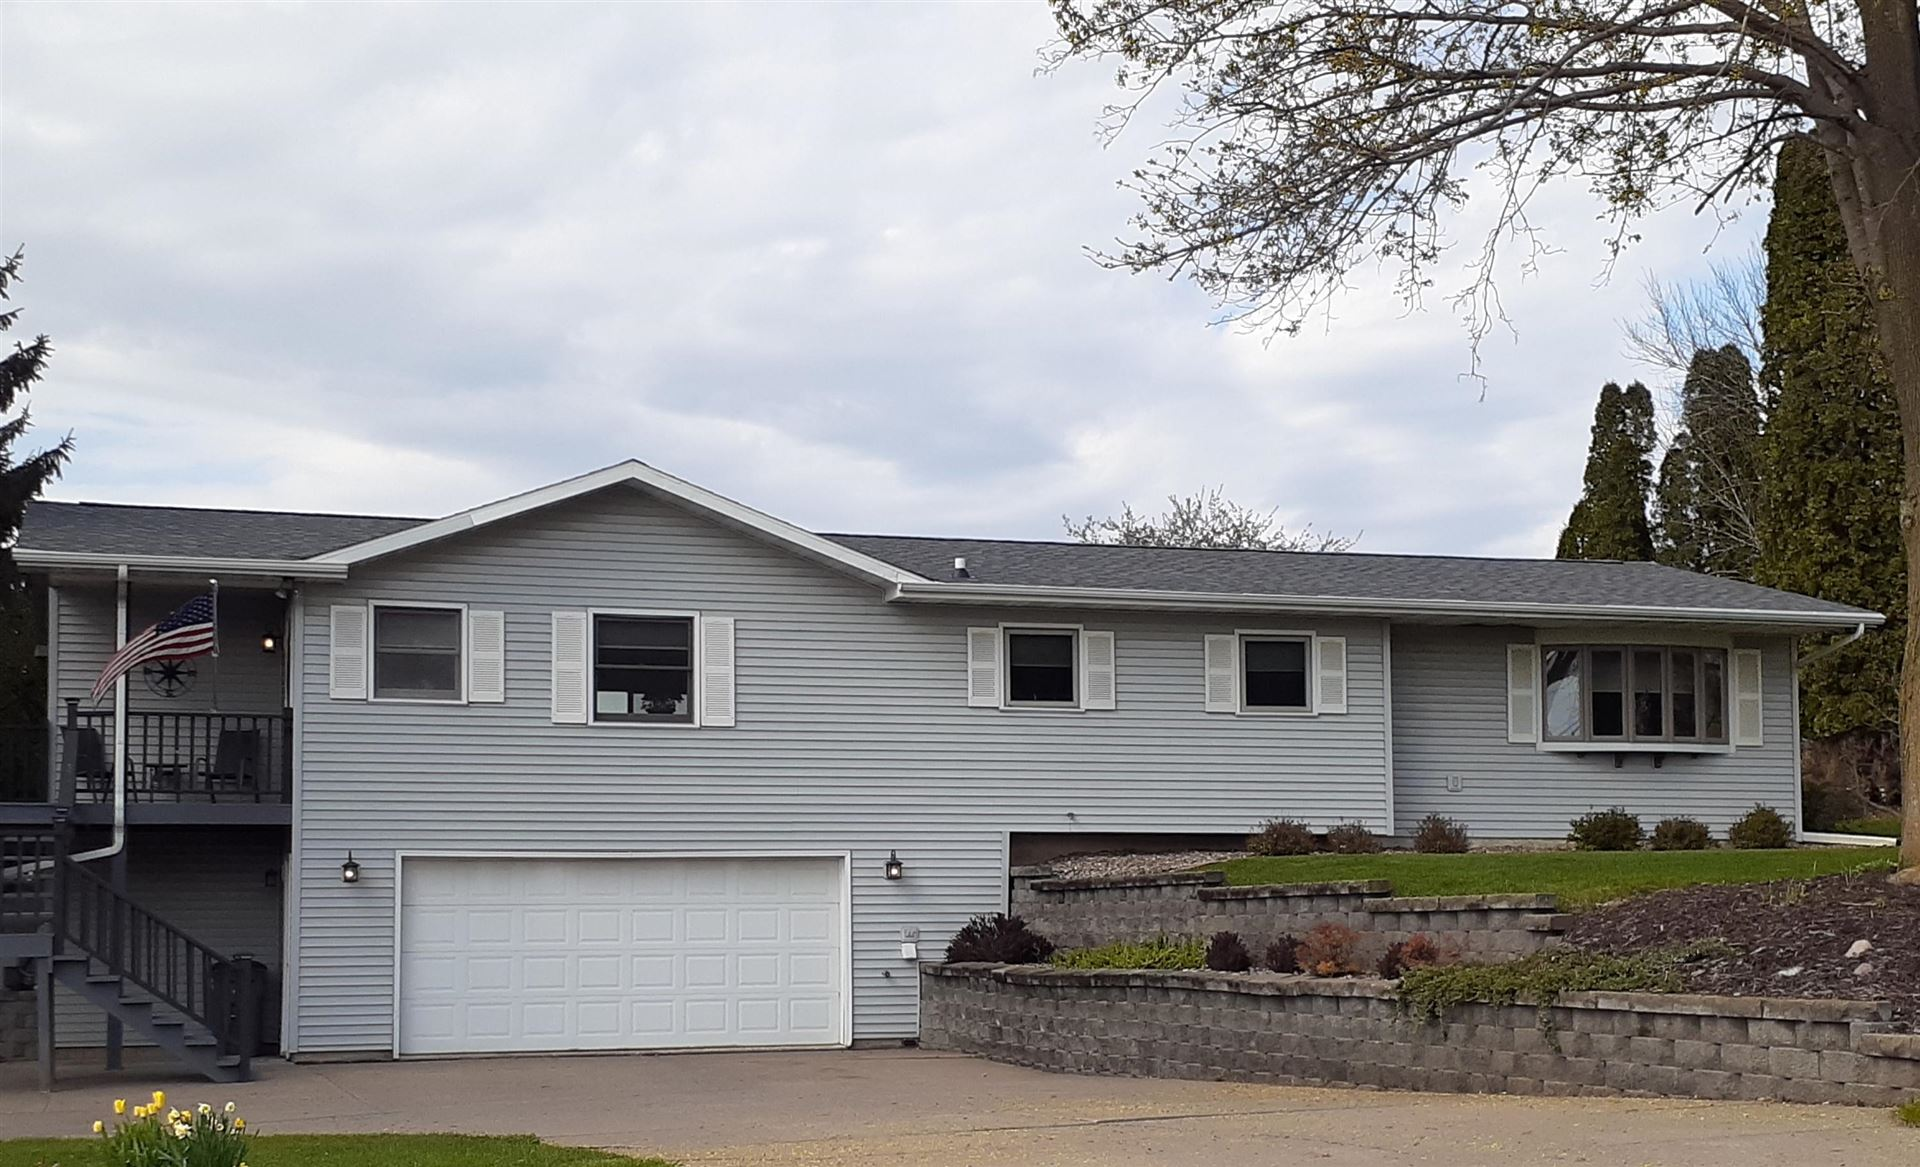 W6244 County Road S, Onalaska, WI 54650 - MLS#: 1737340